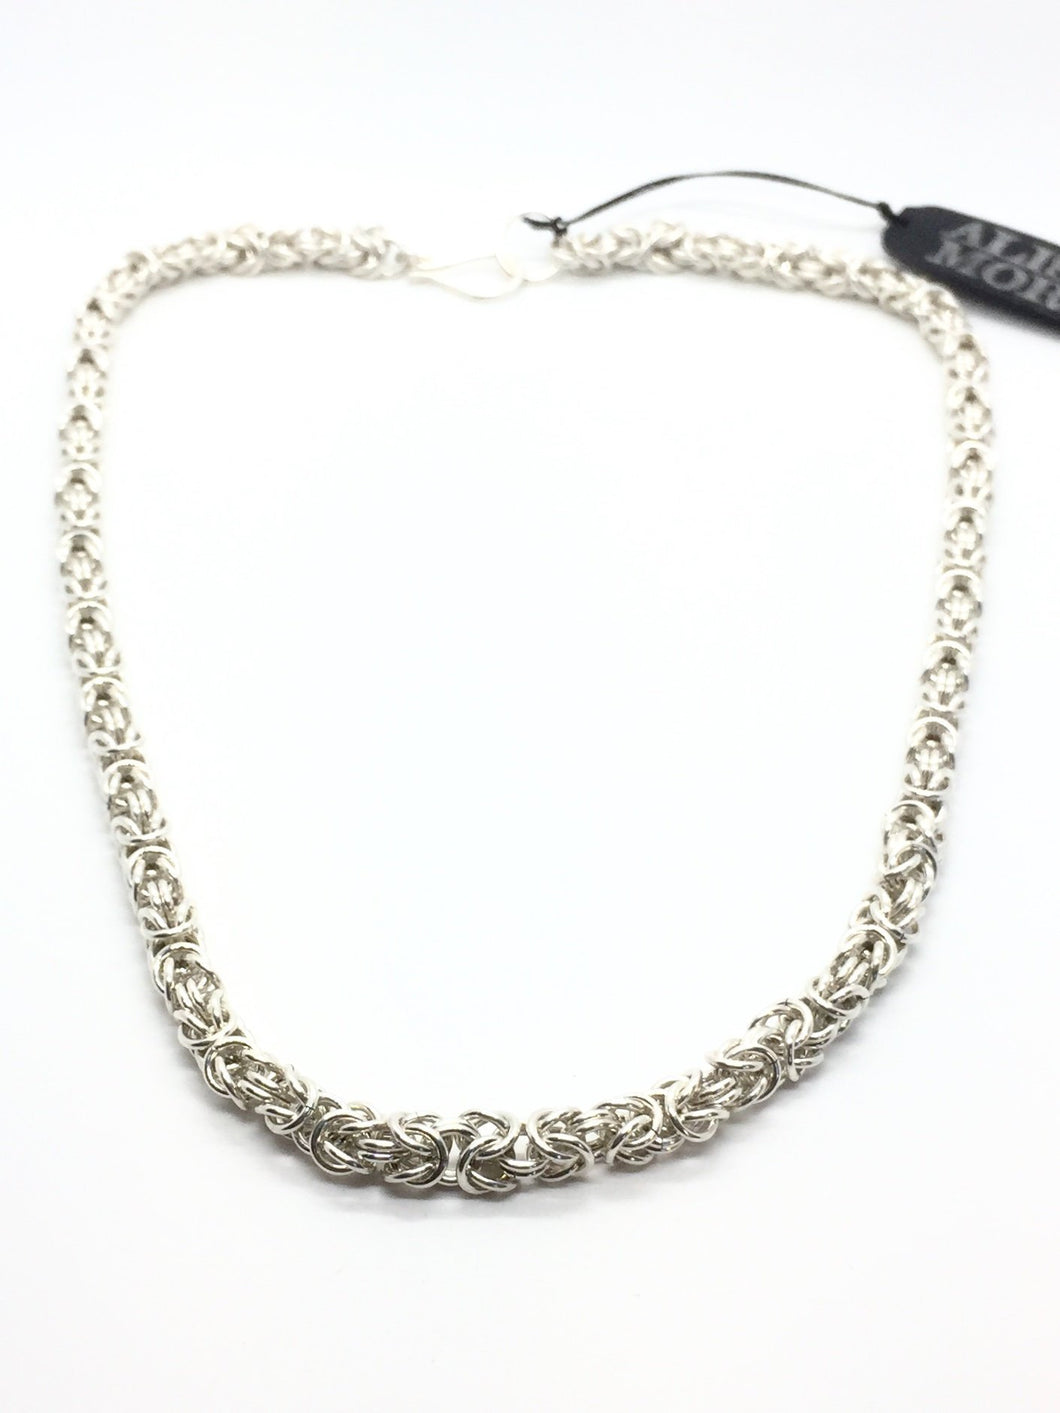 Handmade Sterling Silver Byzantine Chainmaille Necklace